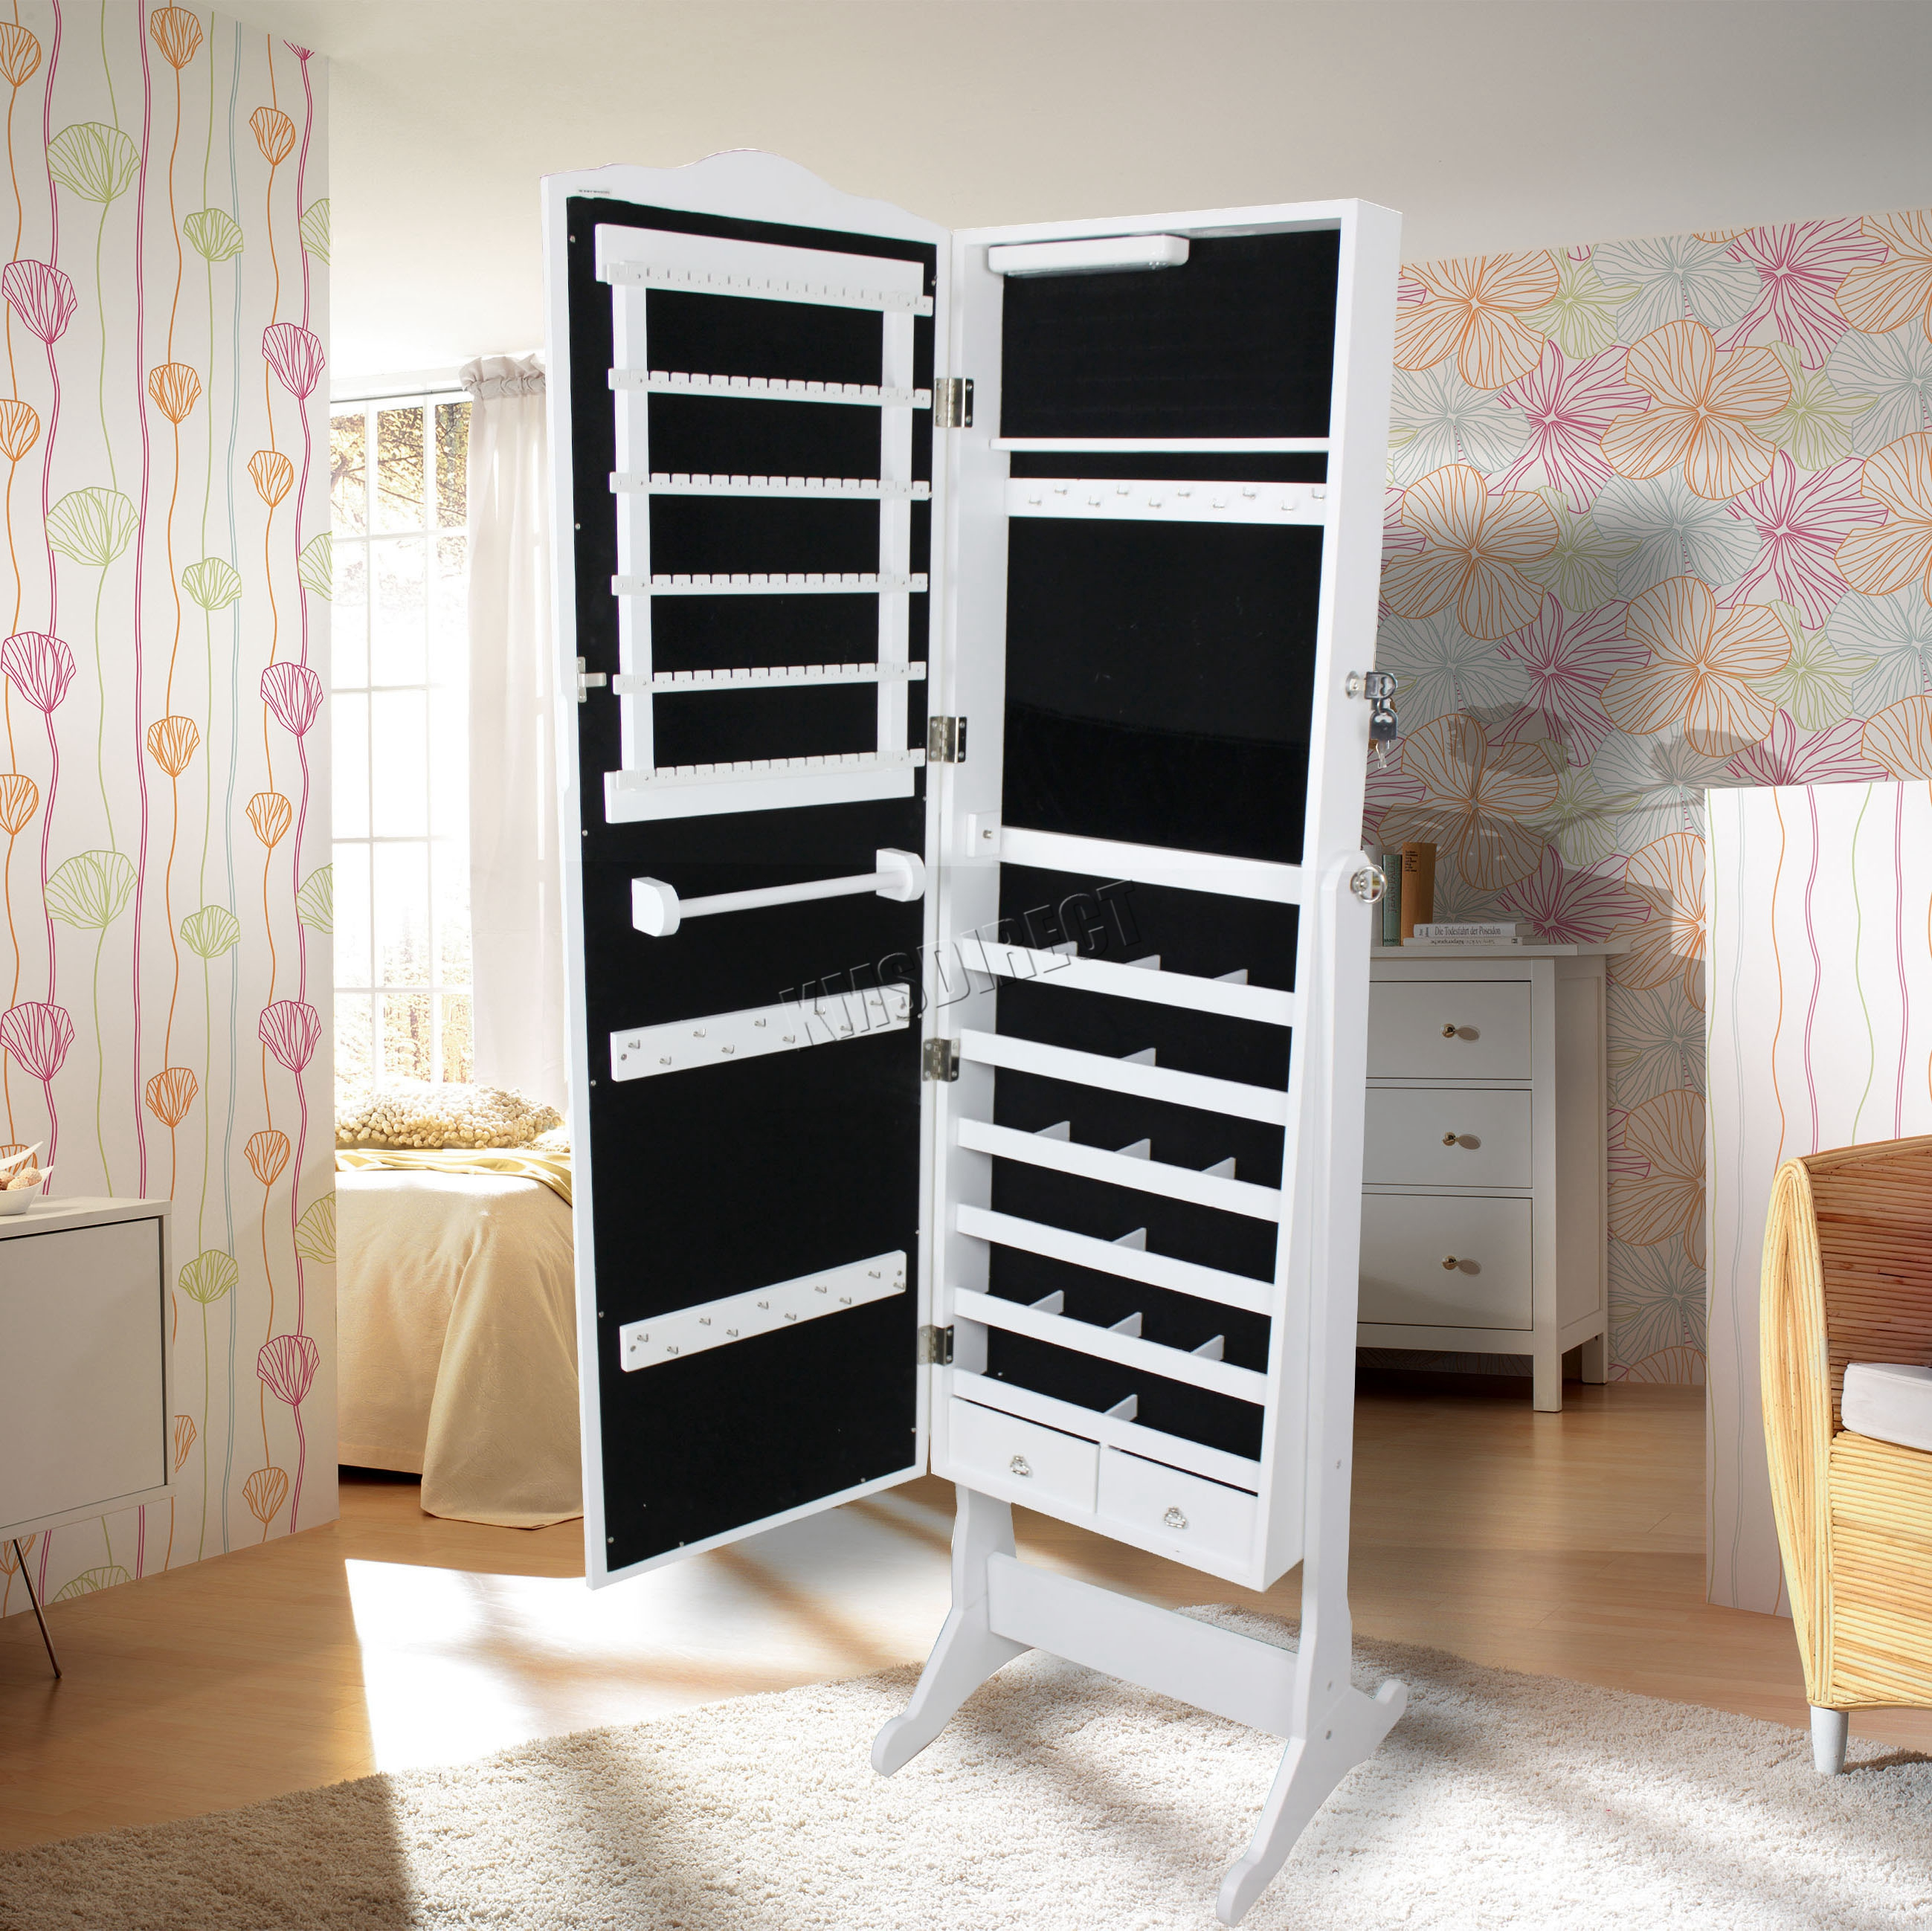 Exceptionnel Image Is Loading WestWood Armoire Jewellery Cabinet  Storage Stand Lockable Jewelry